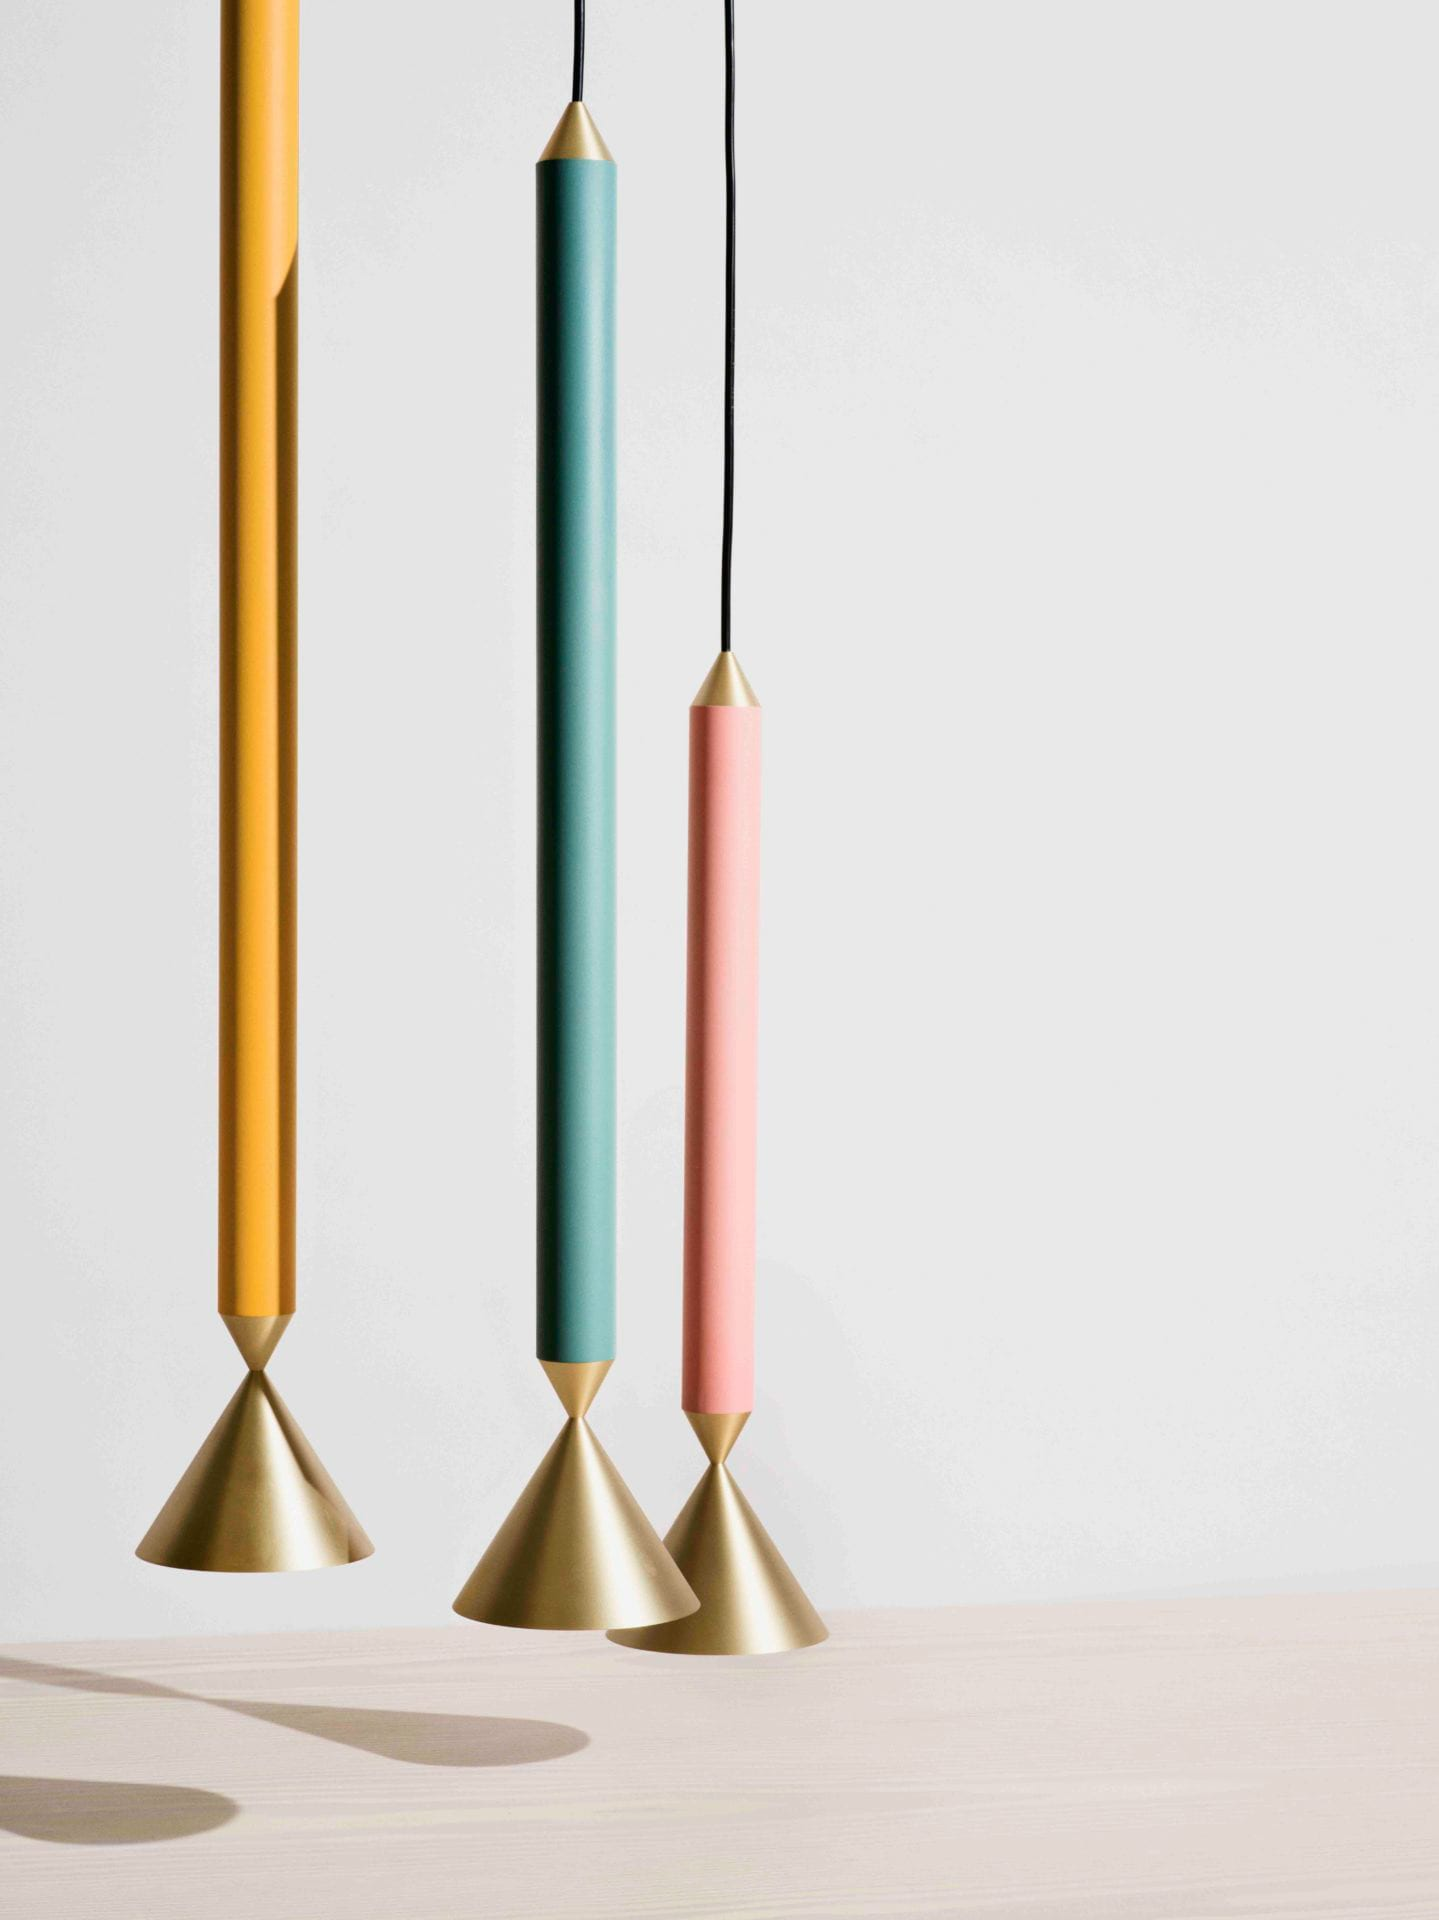 Apollo for Phloc Lighting at Stockholm Furniture Fair 2018   Yellowtrace